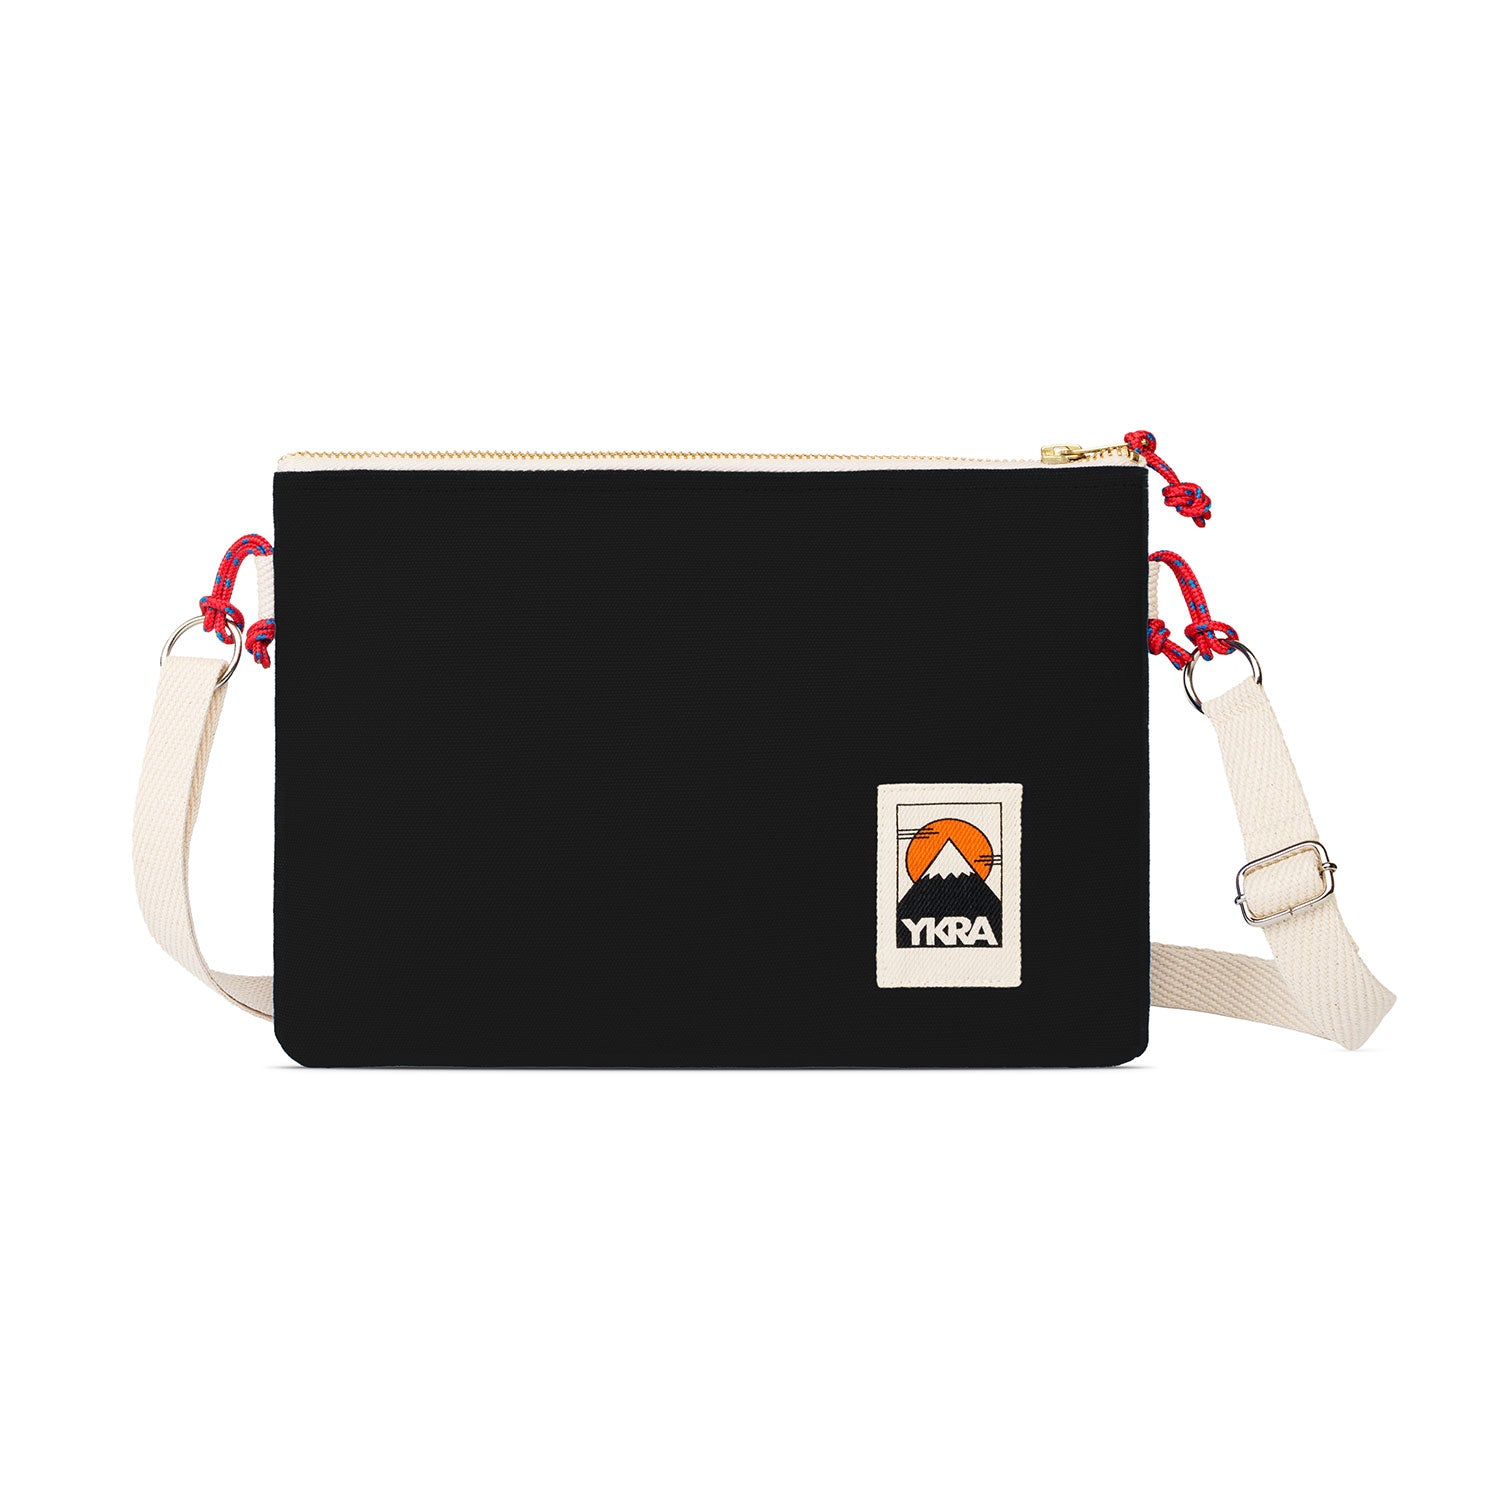 SIDE POUCH - BLACK - YKRA